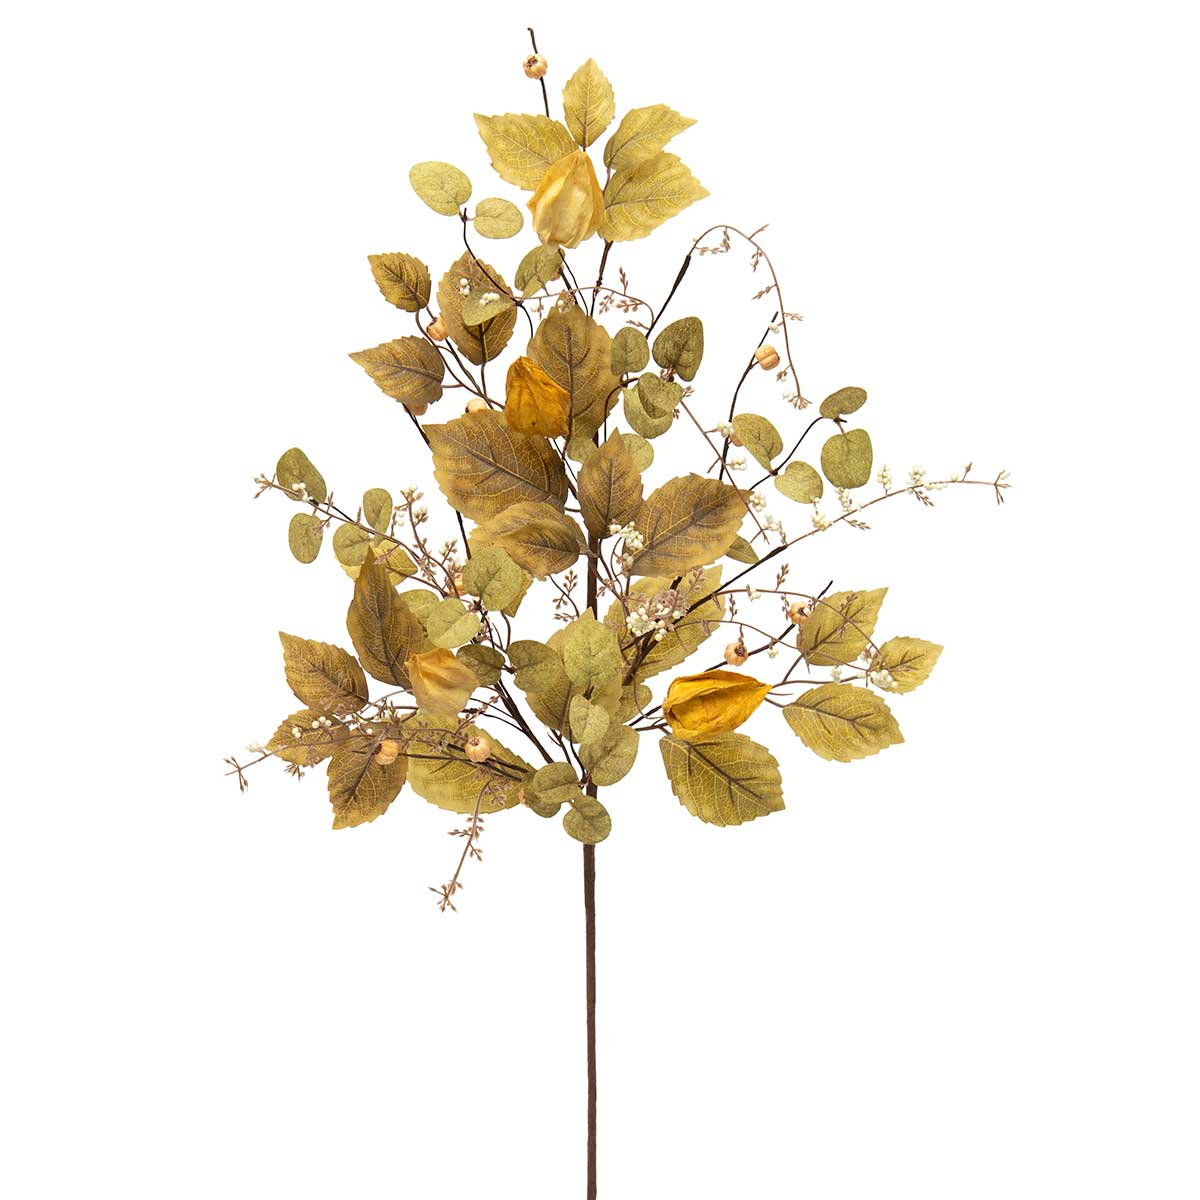 MIXED LANTERN LEAF SPRAY WITH PODS &